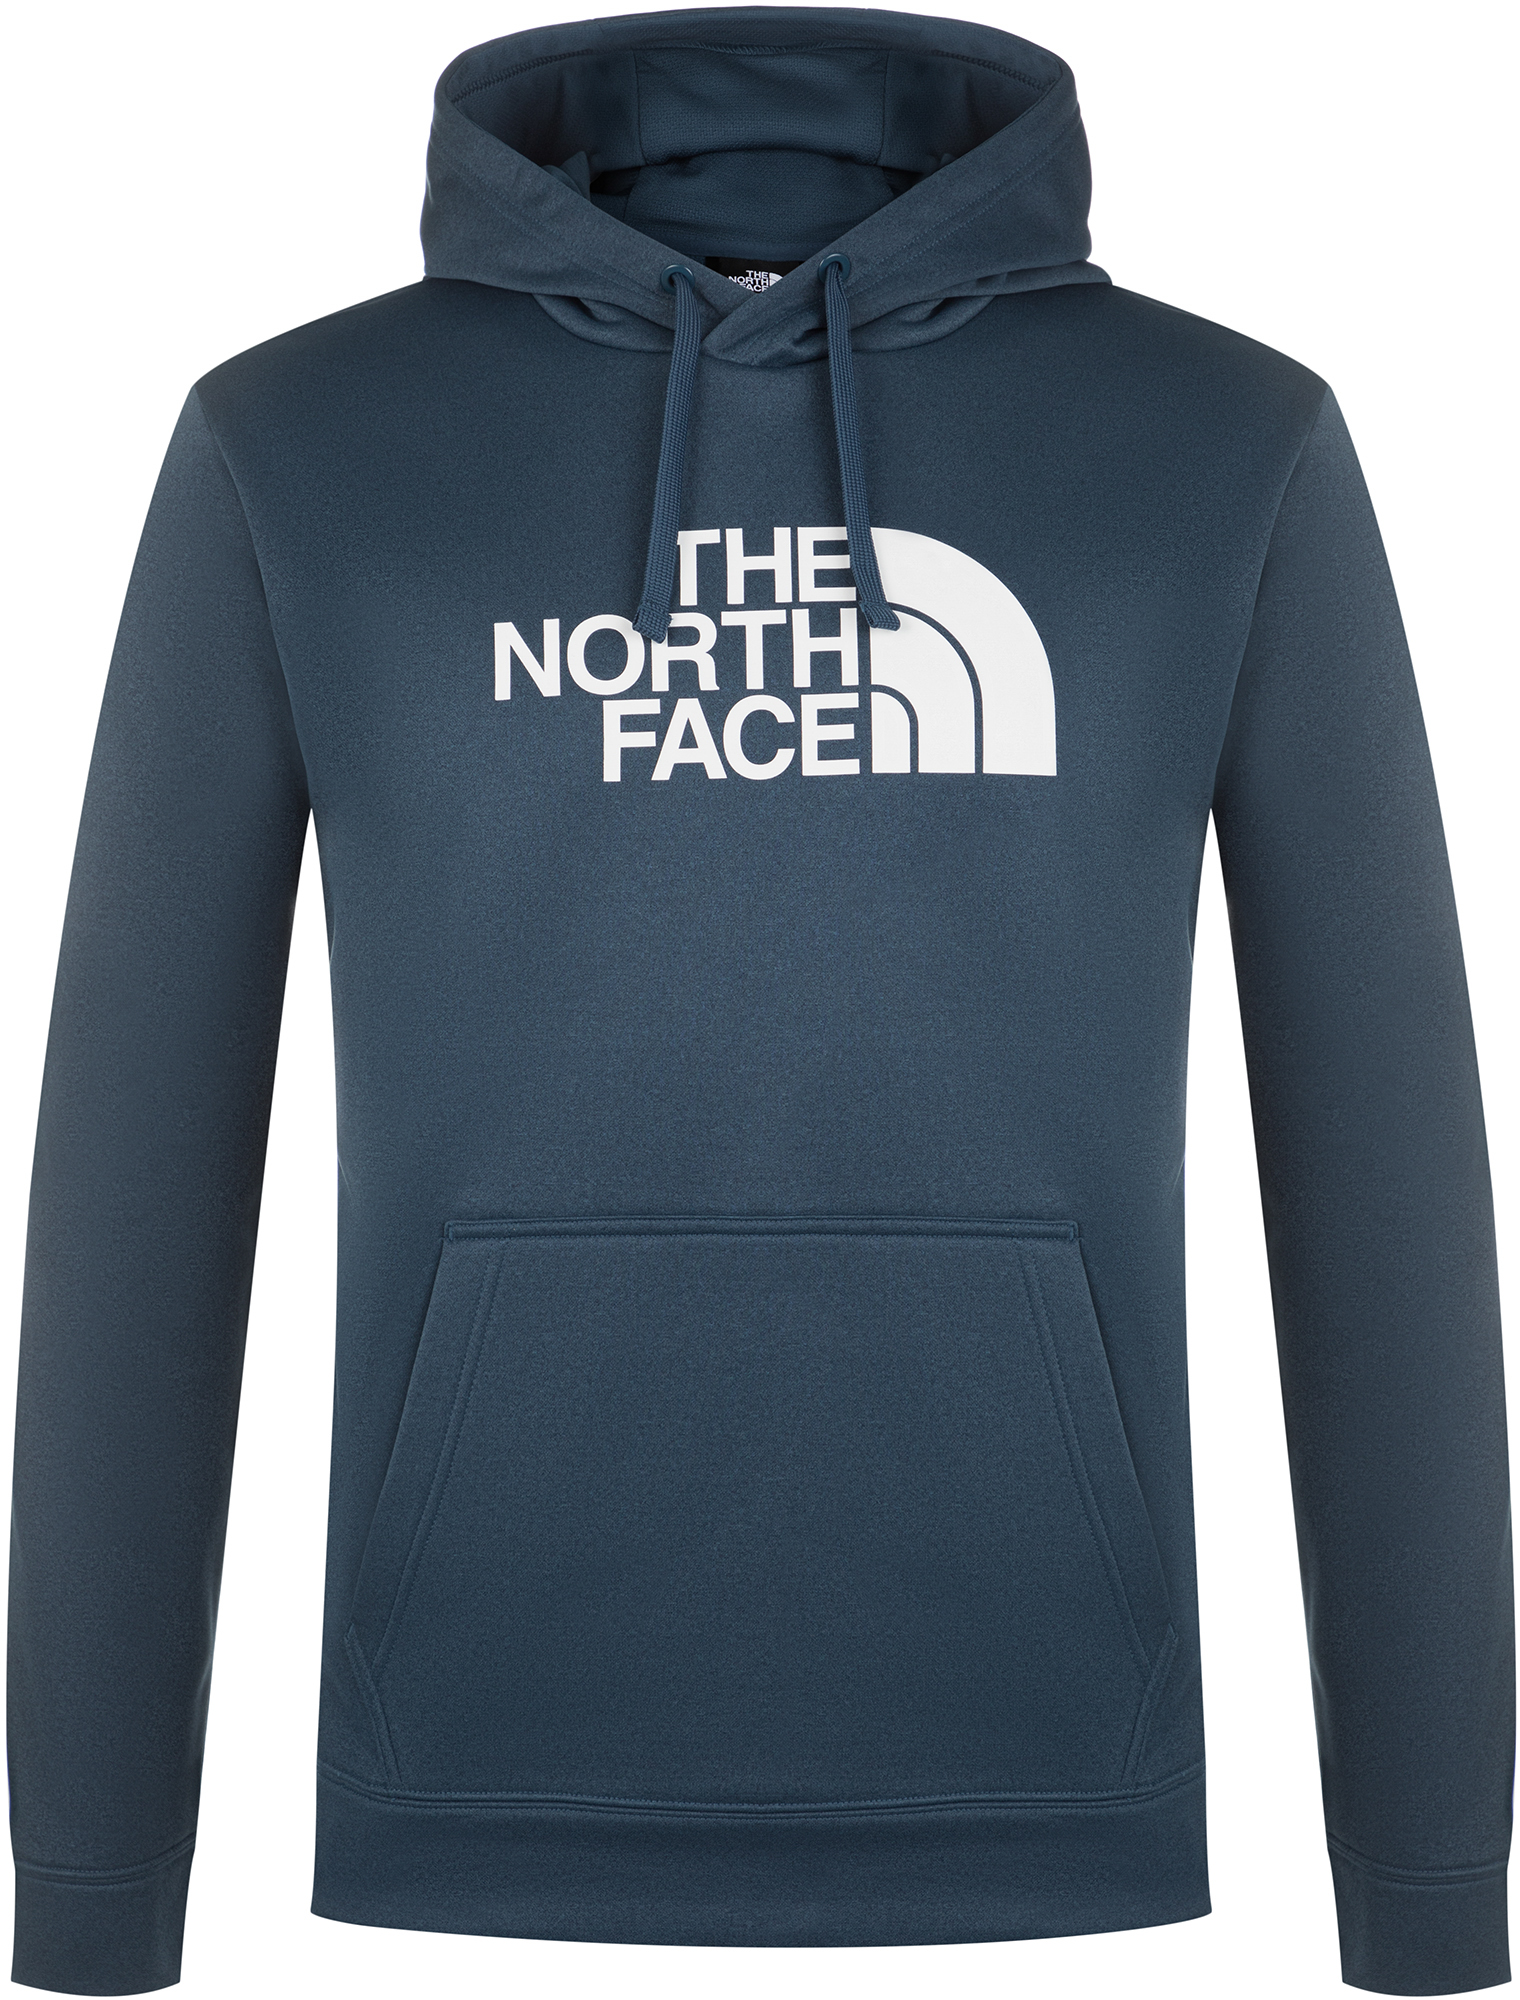 The North Face Худи мужская The North Face Surgent, размер 46 шапка the north face the north face surgent beanie черный lxl